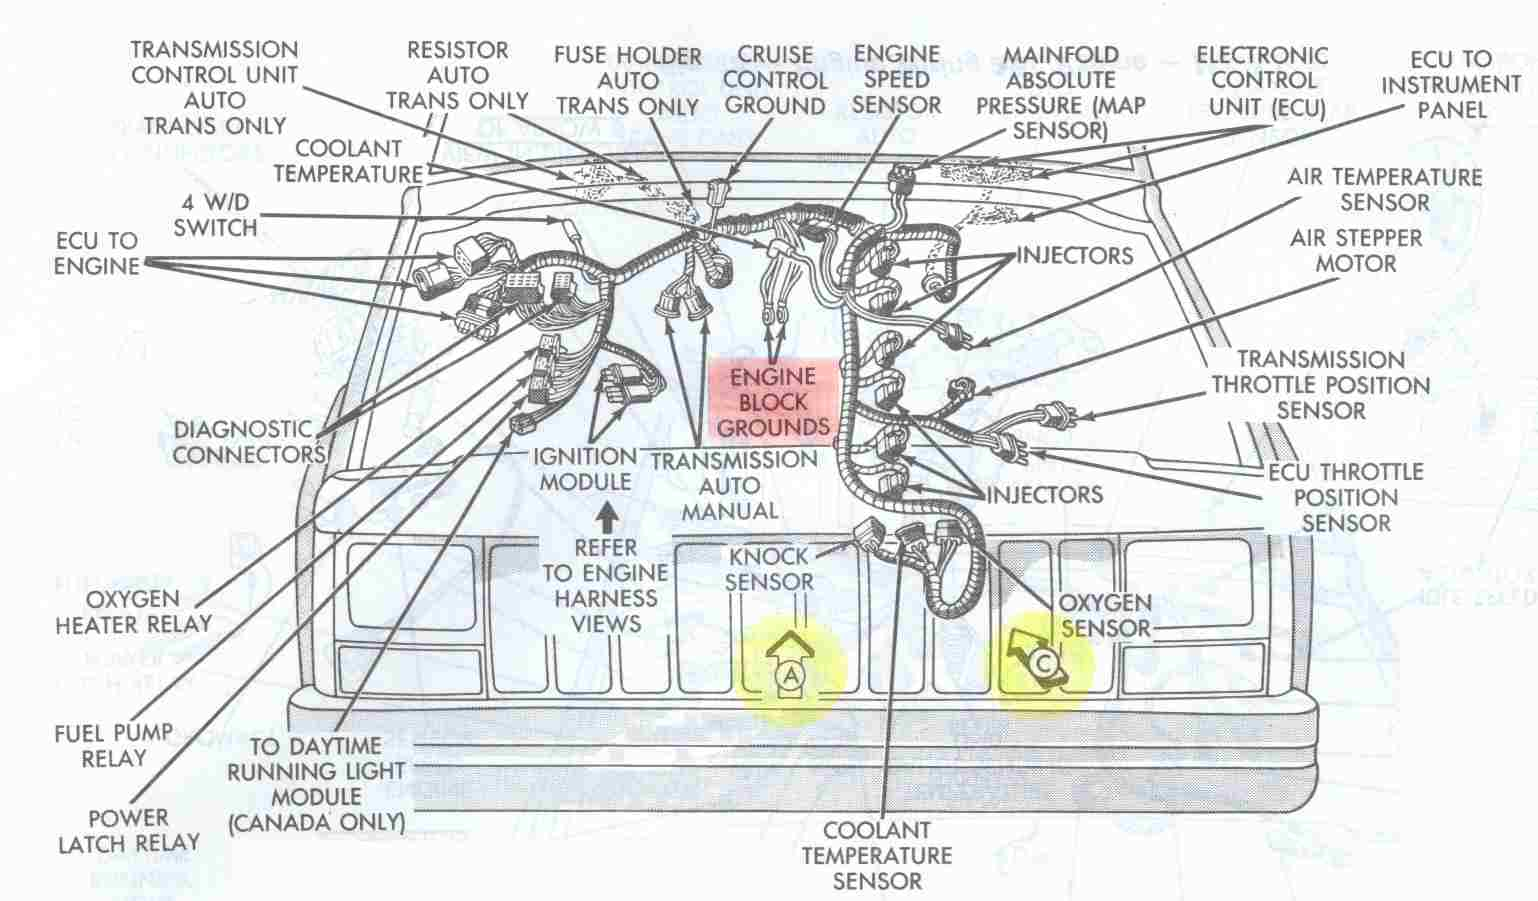 Jeep Cherokee Ground Wire Diagram Wiring Library Wagoneer Tail Lights Forum On Stereo Engine Bay Schematic Showing Major Electrical Points For 40l Engines